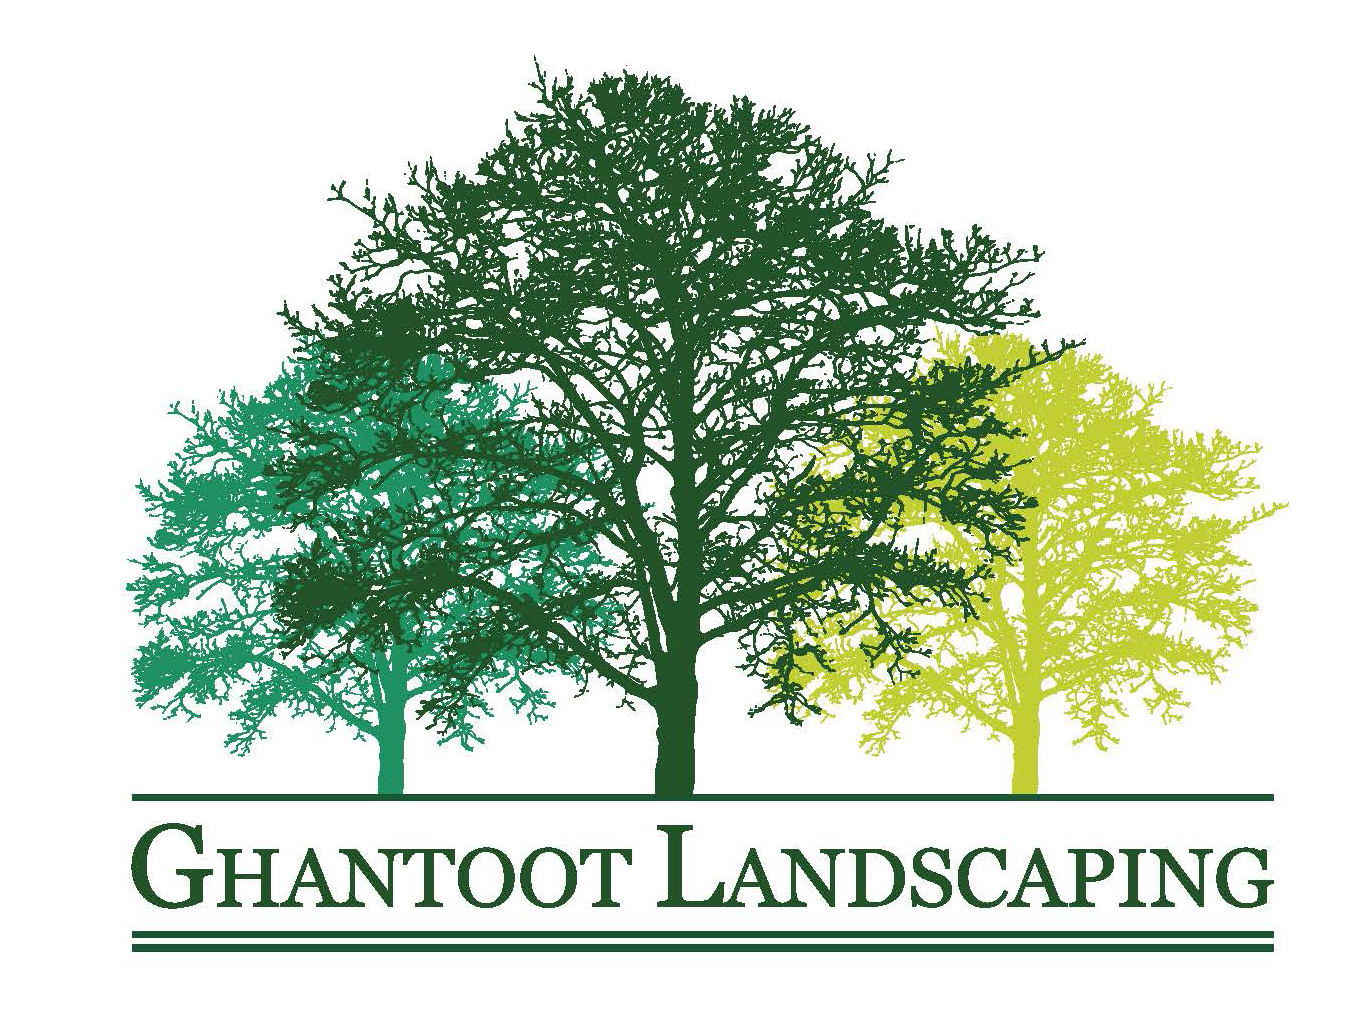 Ghantoot Landscaping